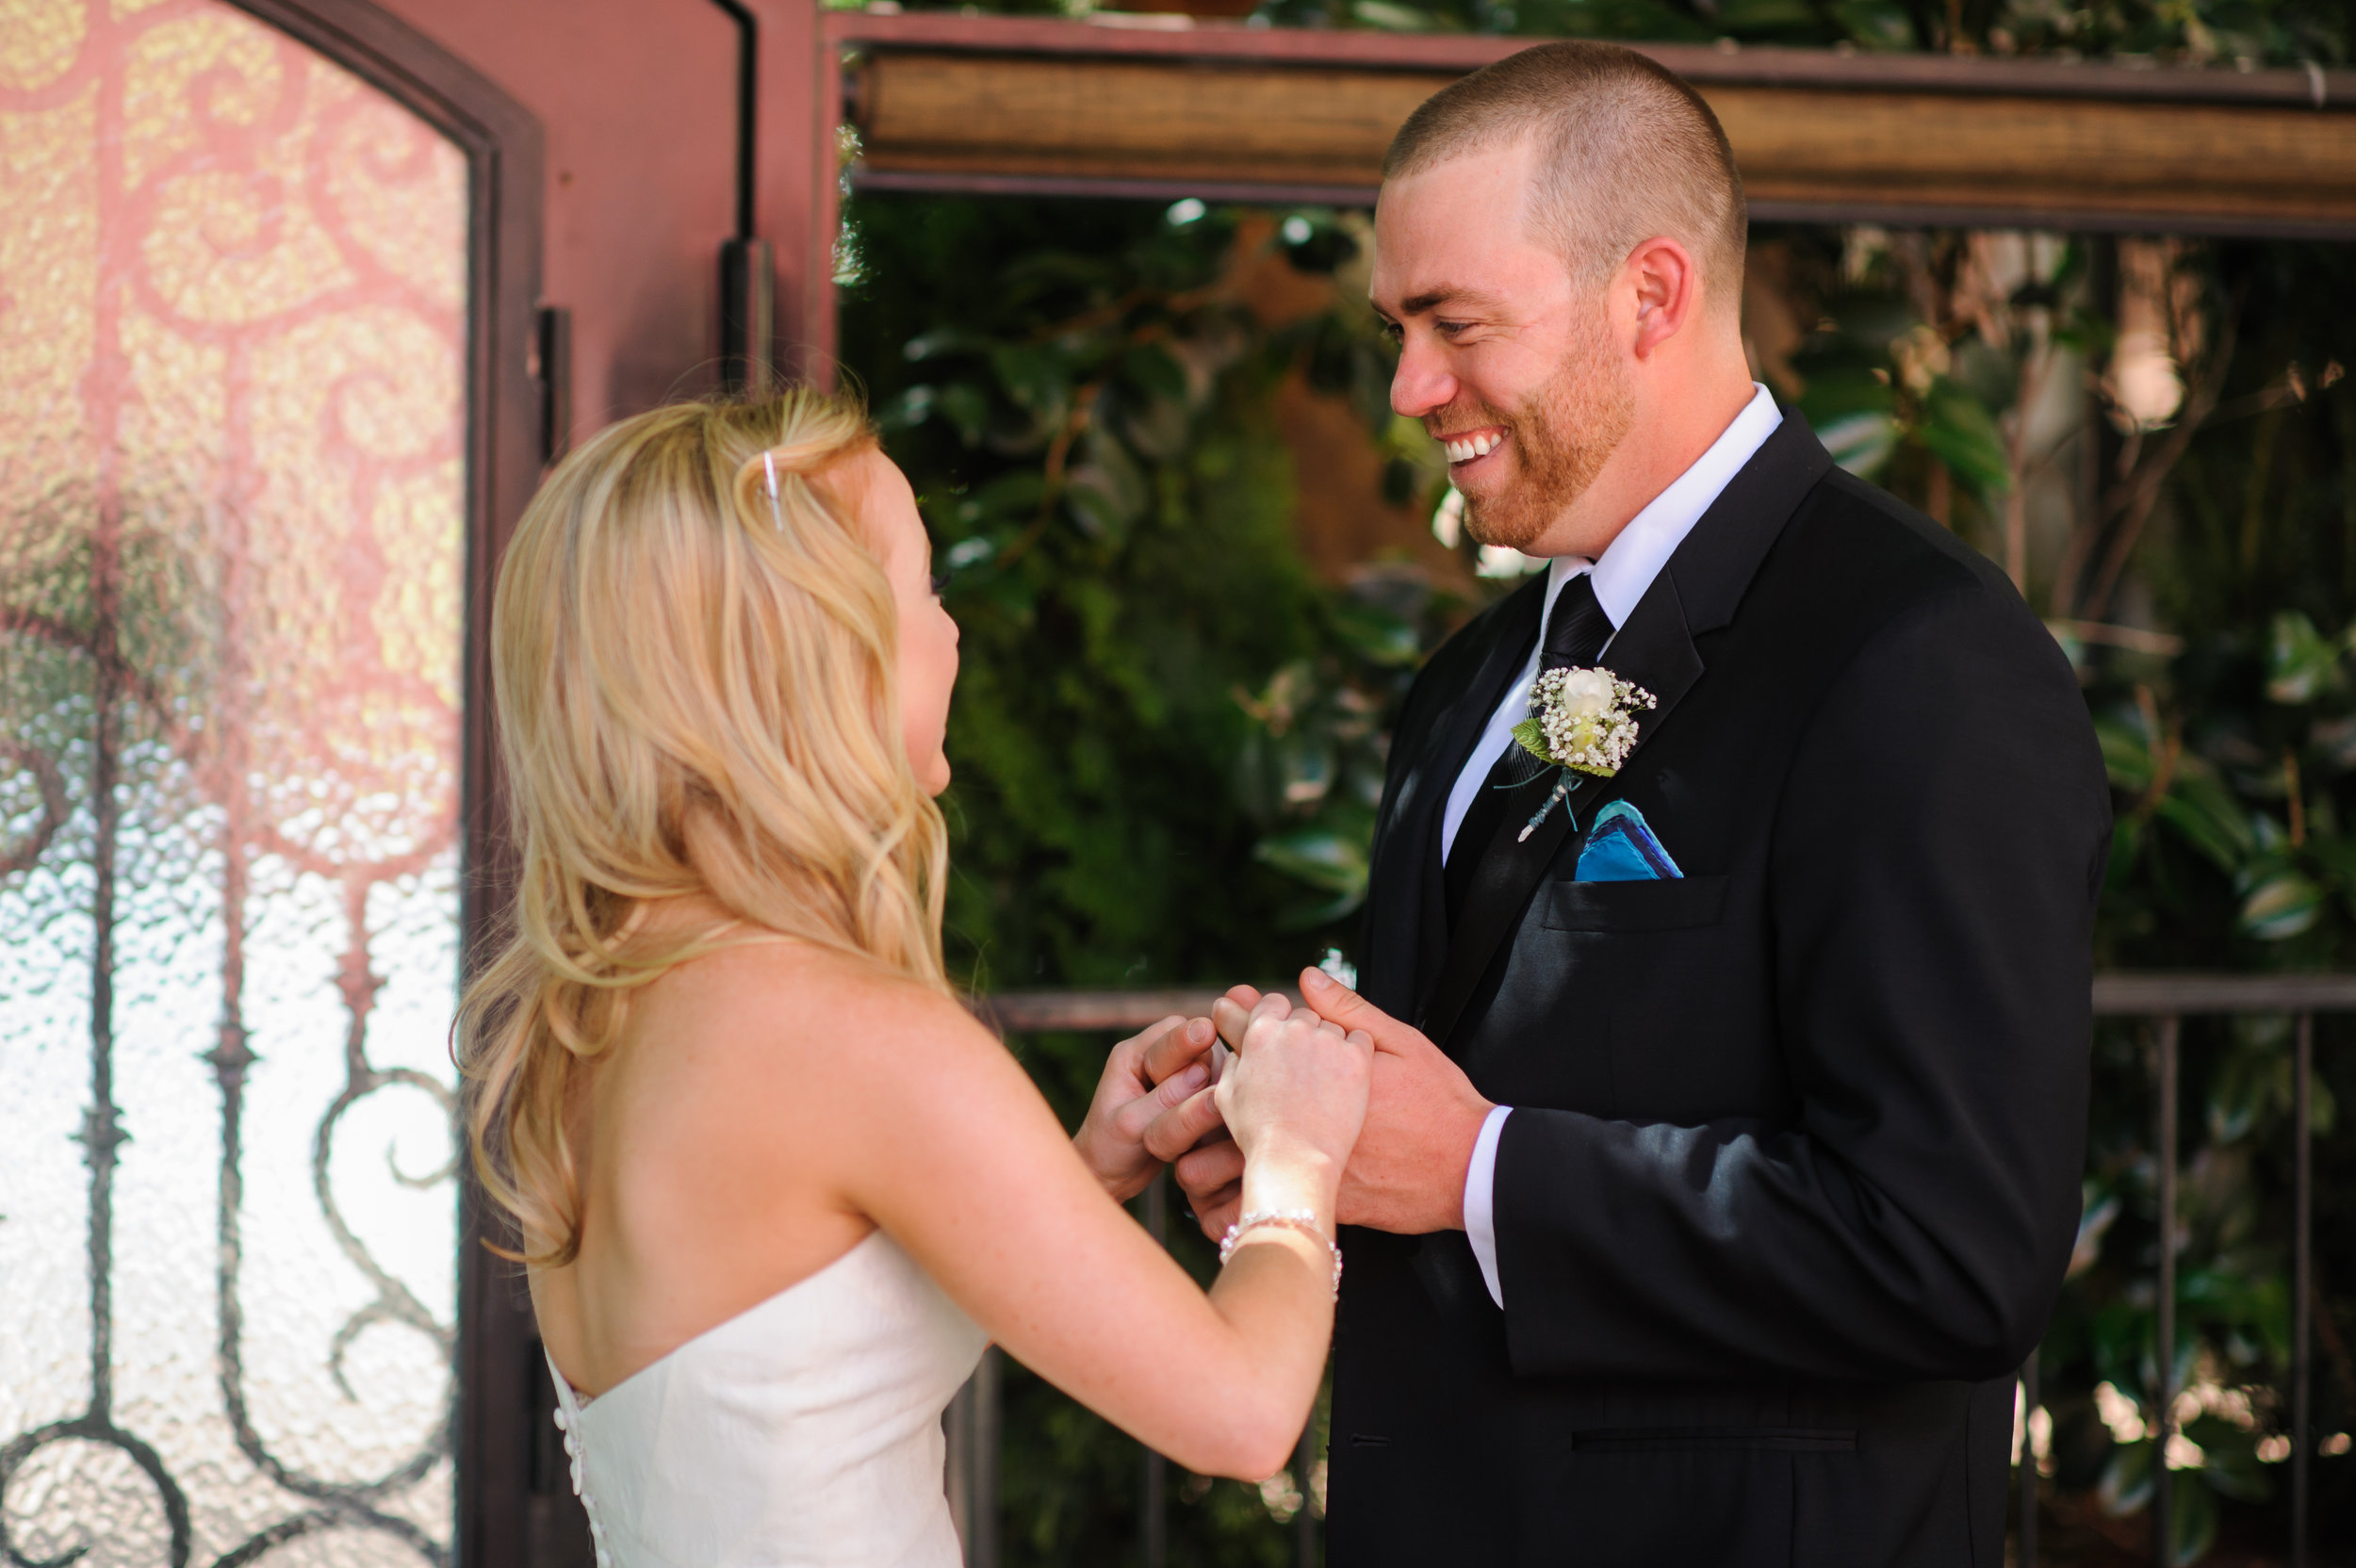 jenelle-brian-001-courtyard-d'oro-old-sacramento-wedding-photographer-katherine-nicole-photography014.JPG